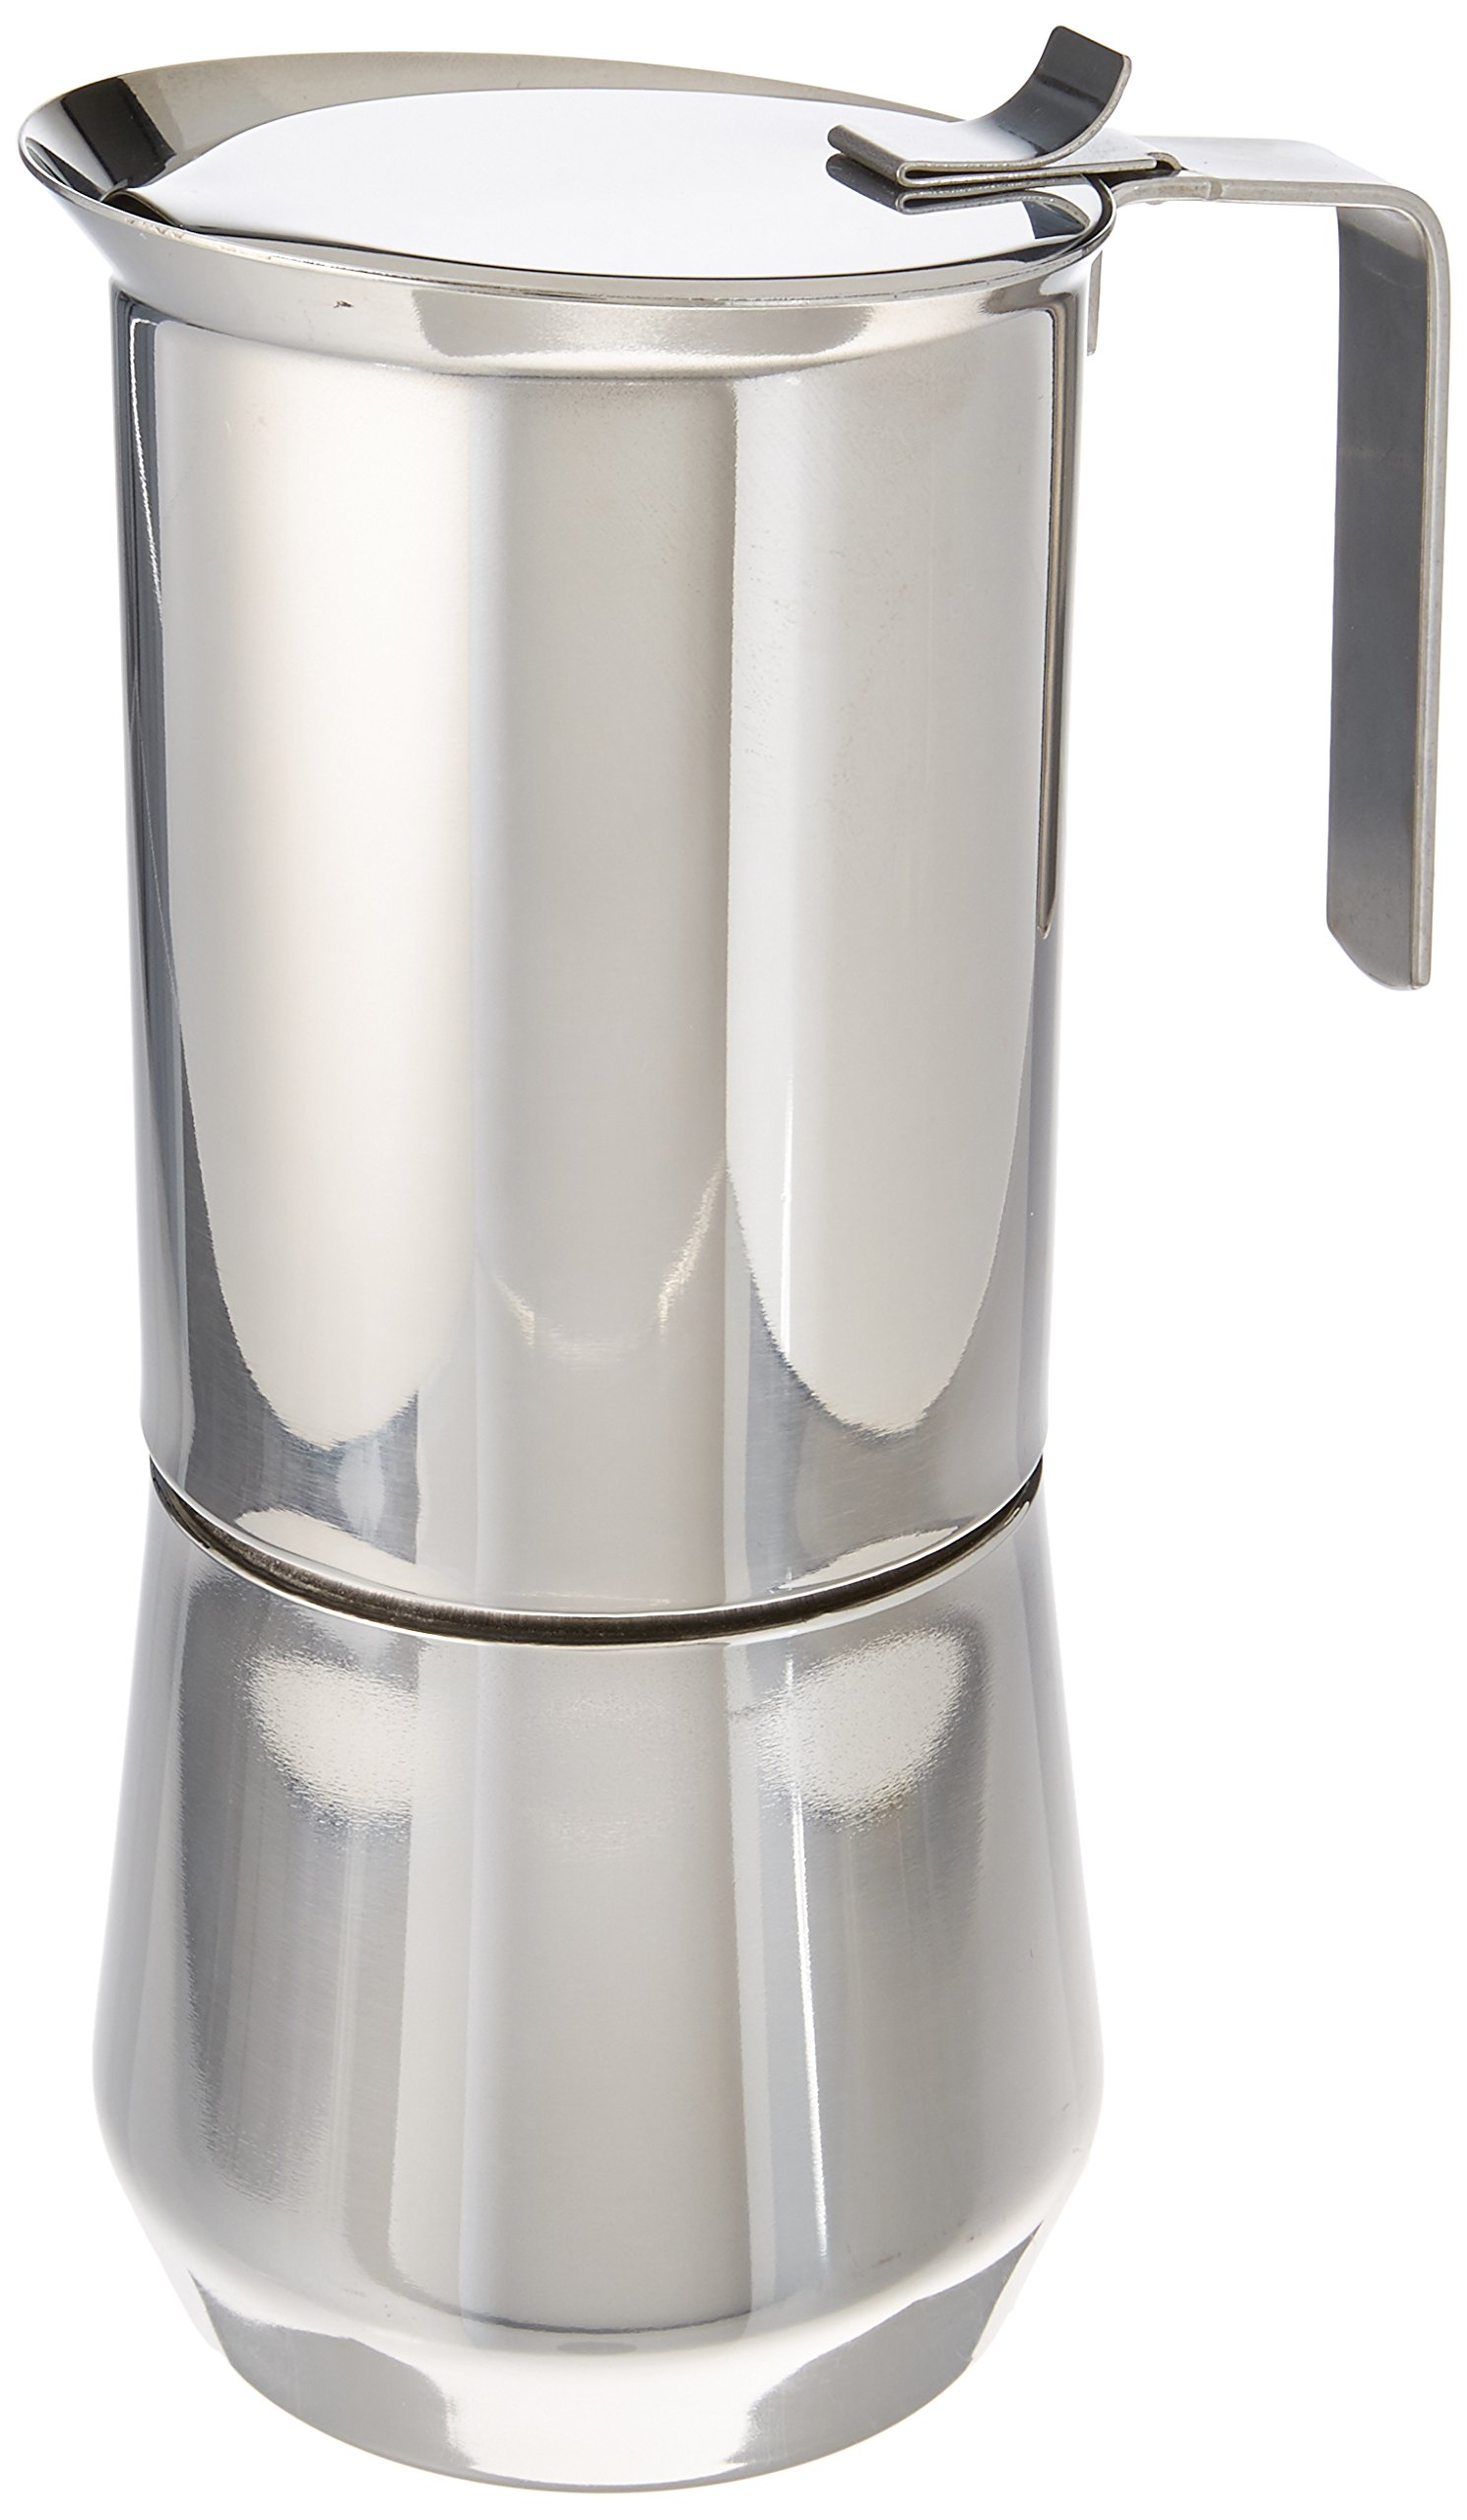 ILSA 122-10, Stainless Steel Stove-Top Espresso Maker, 10- cup by GAT